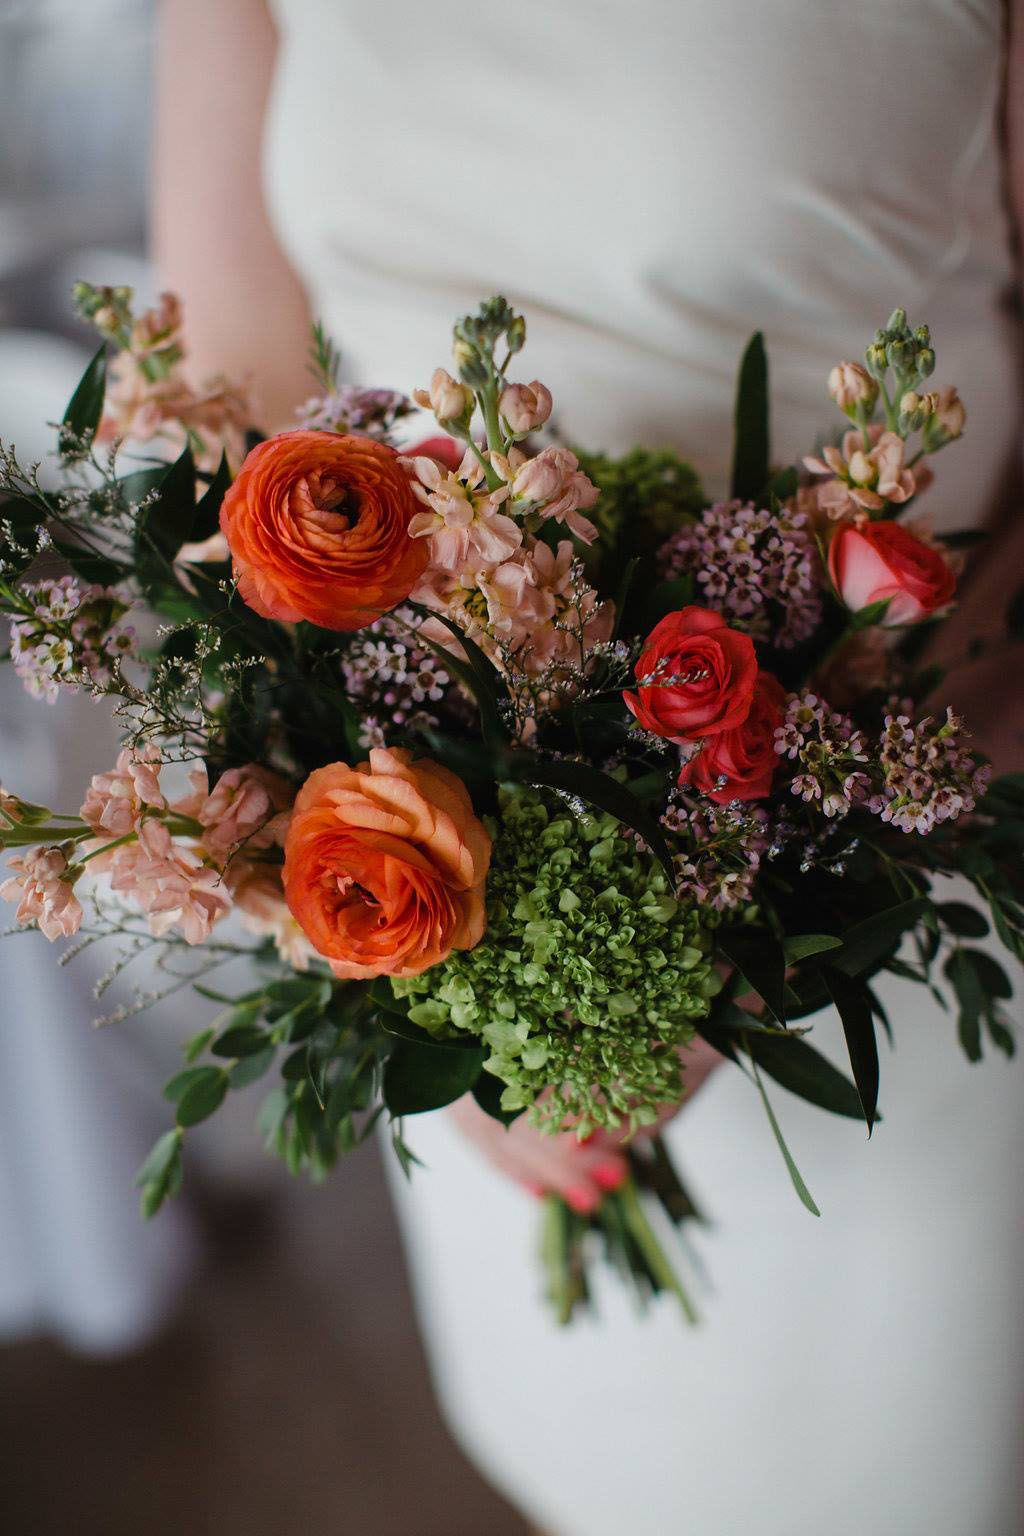 Sweet And Colorful Bridal Bouquet In 2020 Orange Ranunculus Colorful Bridal Bouquet Orange Wedding Flowers